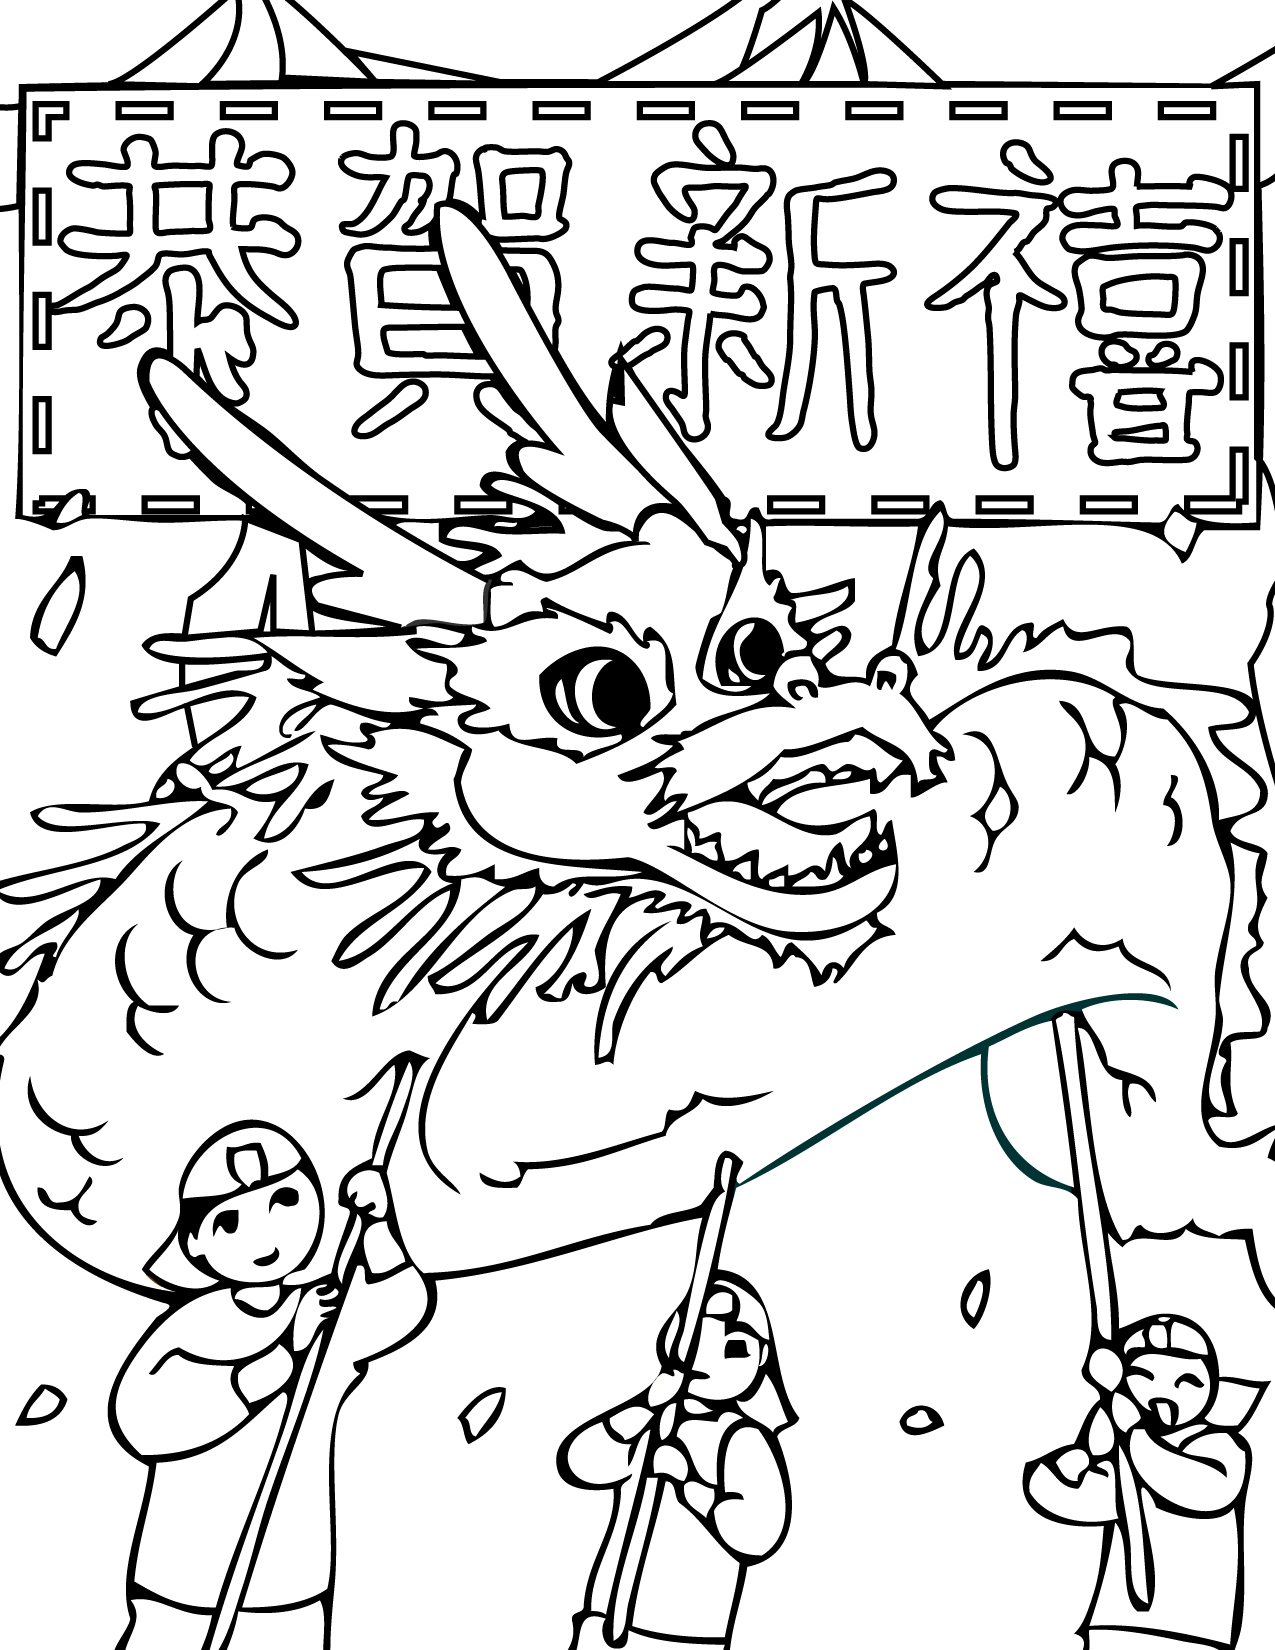 Chinese New Years Coloring Pages at GetDrawings.com | Free ...